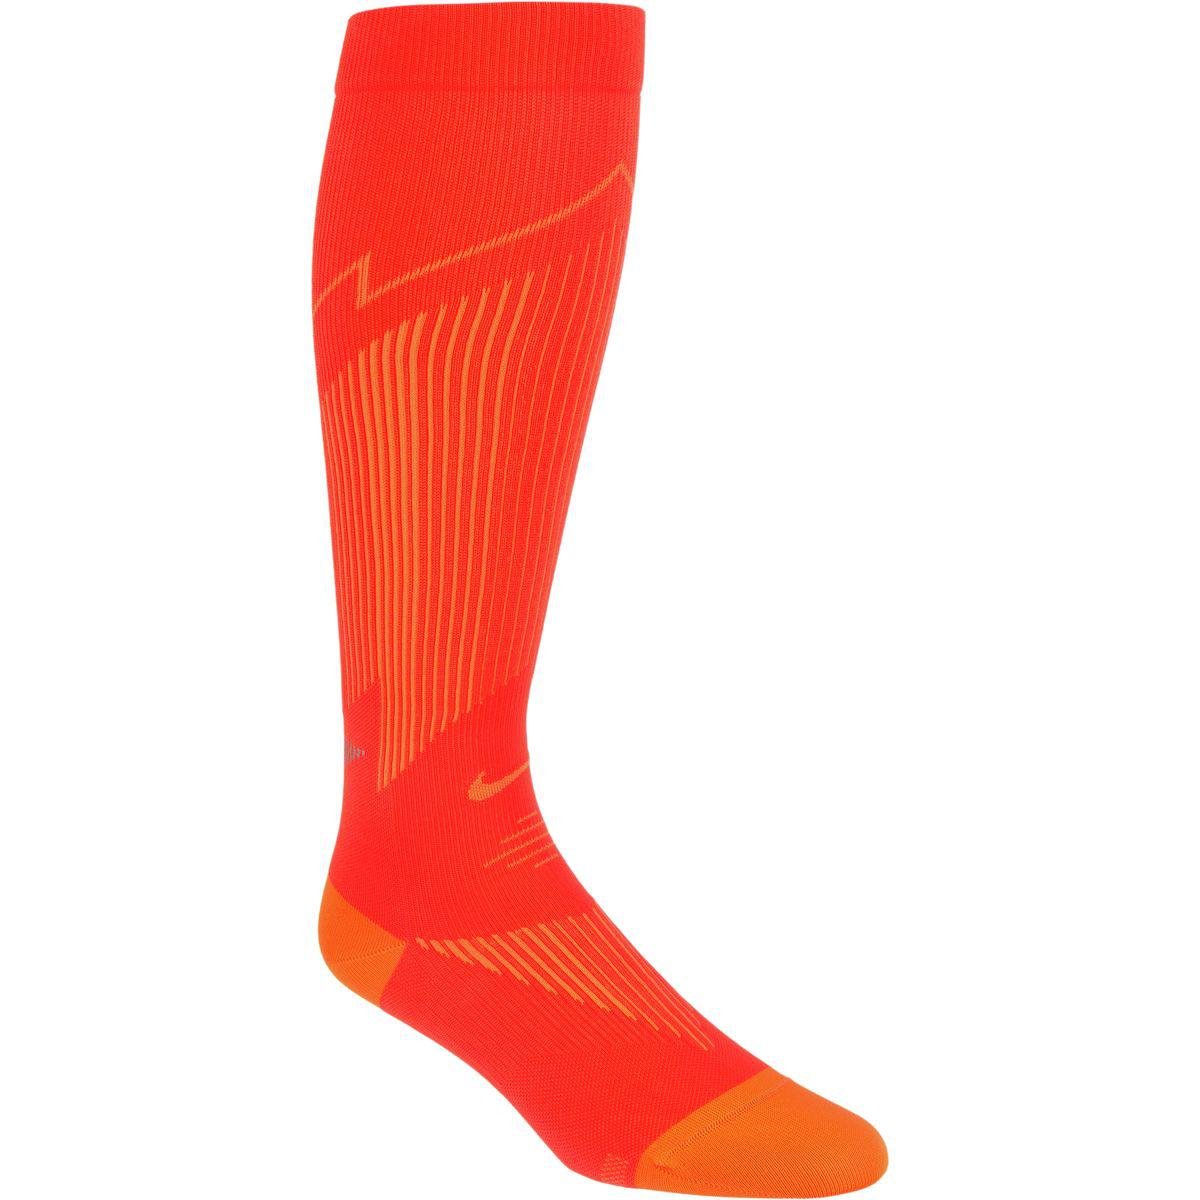 5187edfd48 Lyst - Nike Elite Run Hyper Lightweight Compression Socks in Red